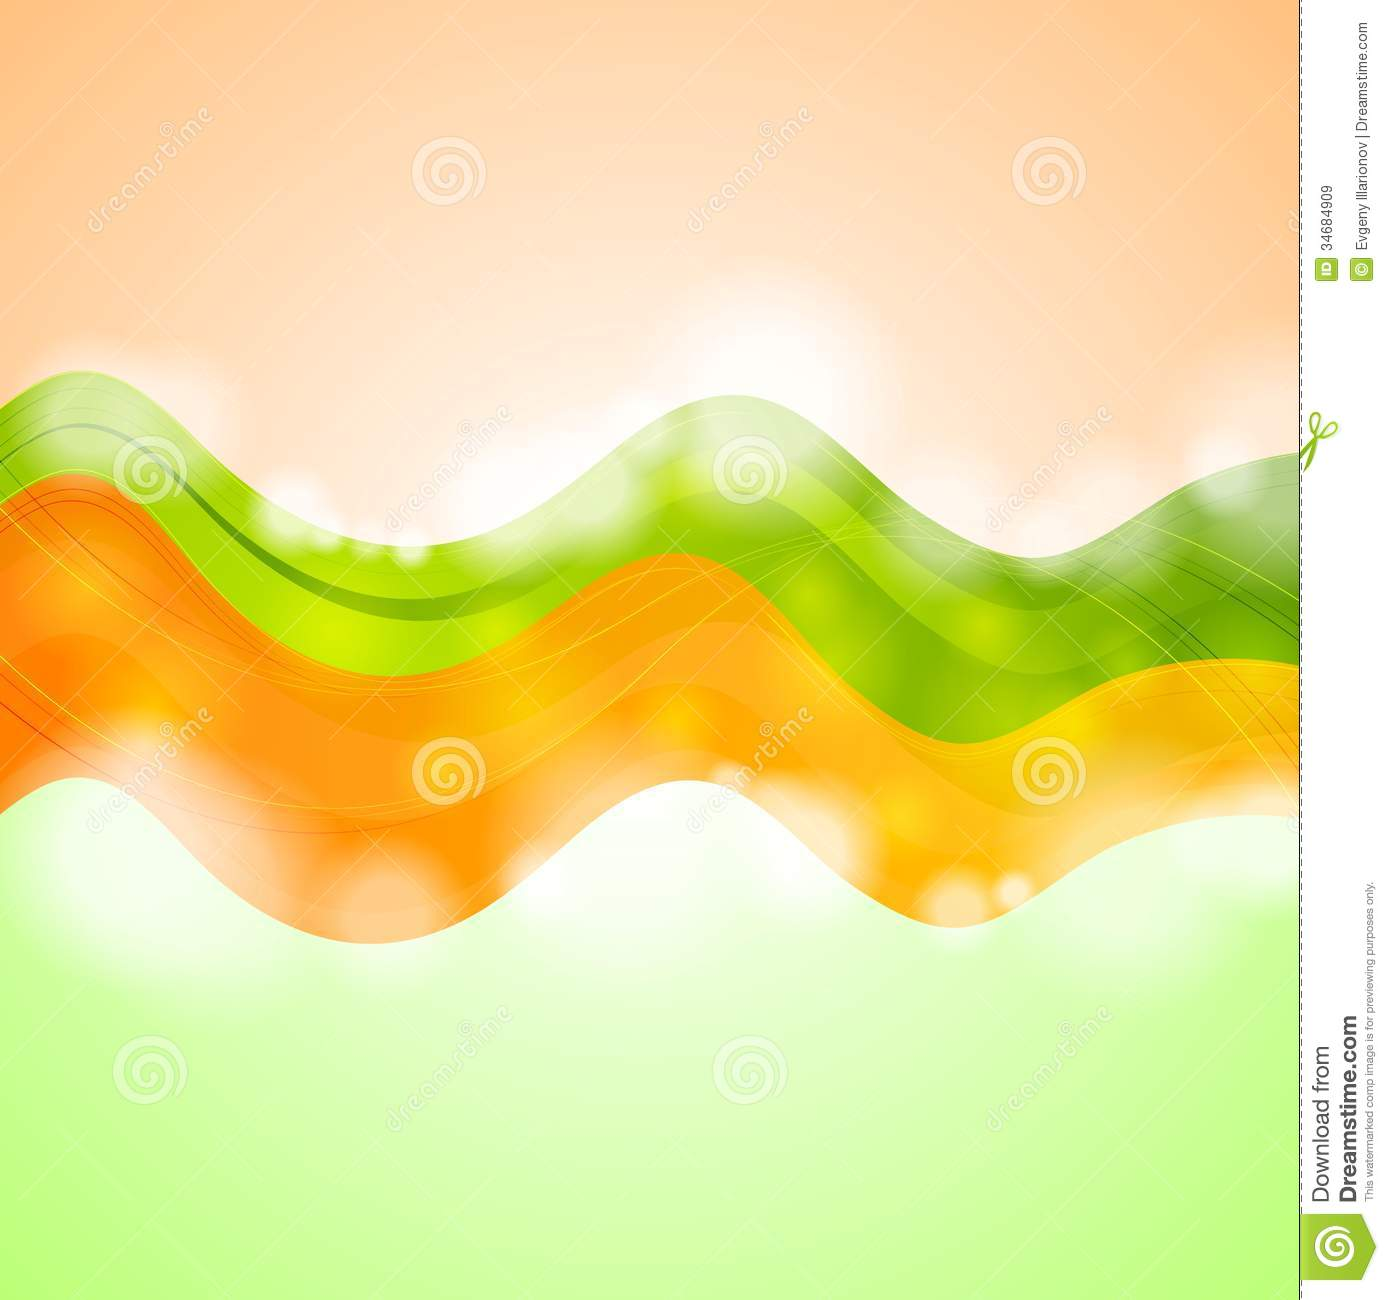 Colourful Vector Illustration Design Royalty Free Stock